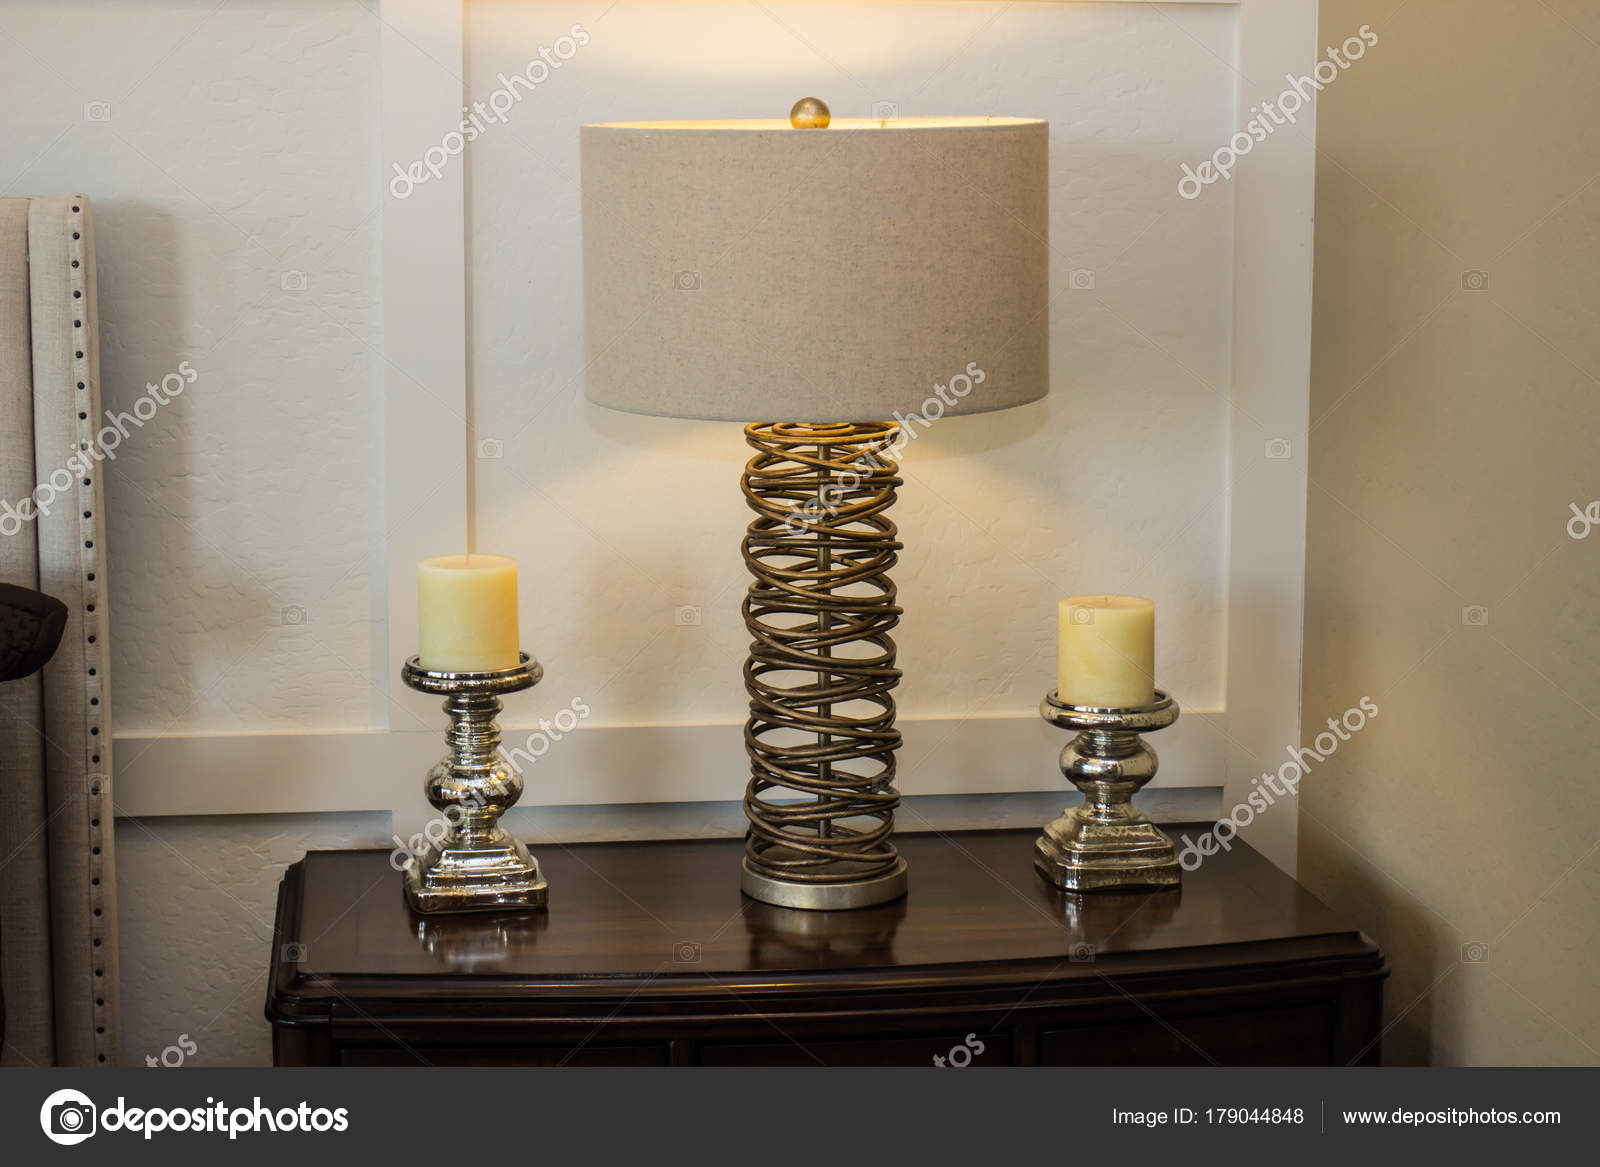 Lamp slaapkamer. slaapkamer met bed en lamp decoratie stockfoto with